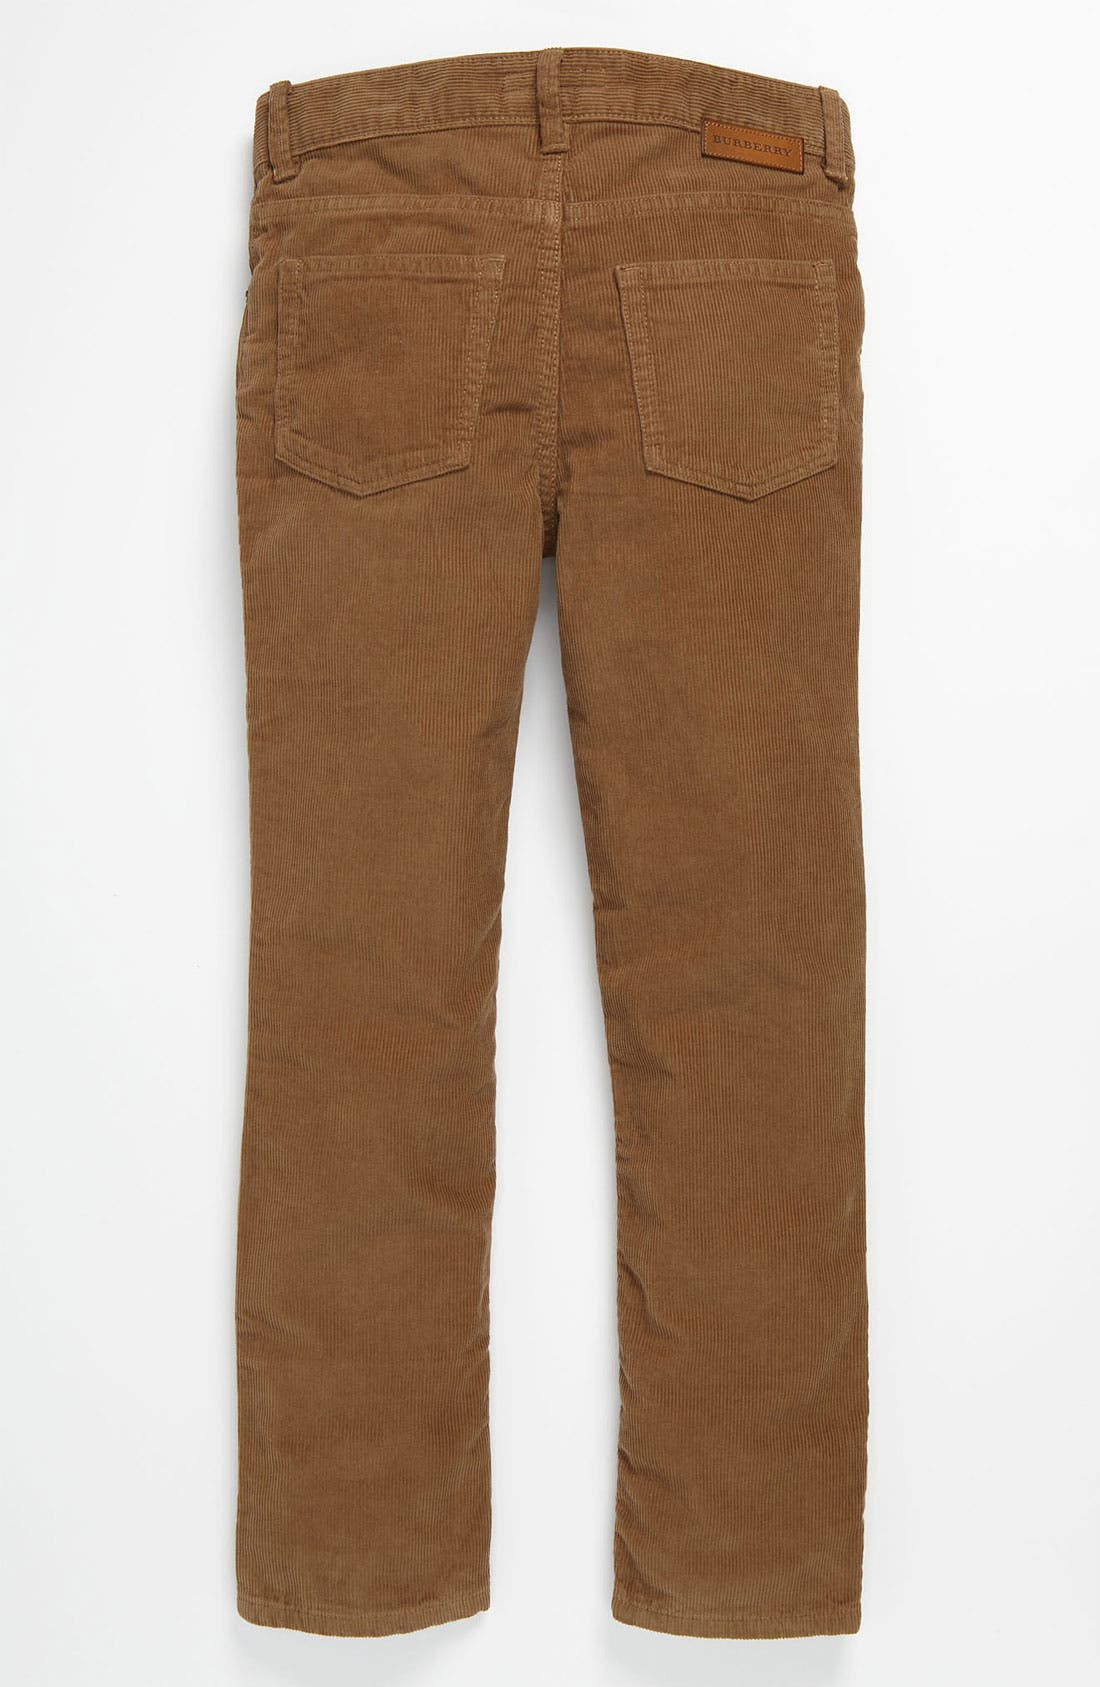 Main Image - Burberry Corduroy Pants (Little Boys)